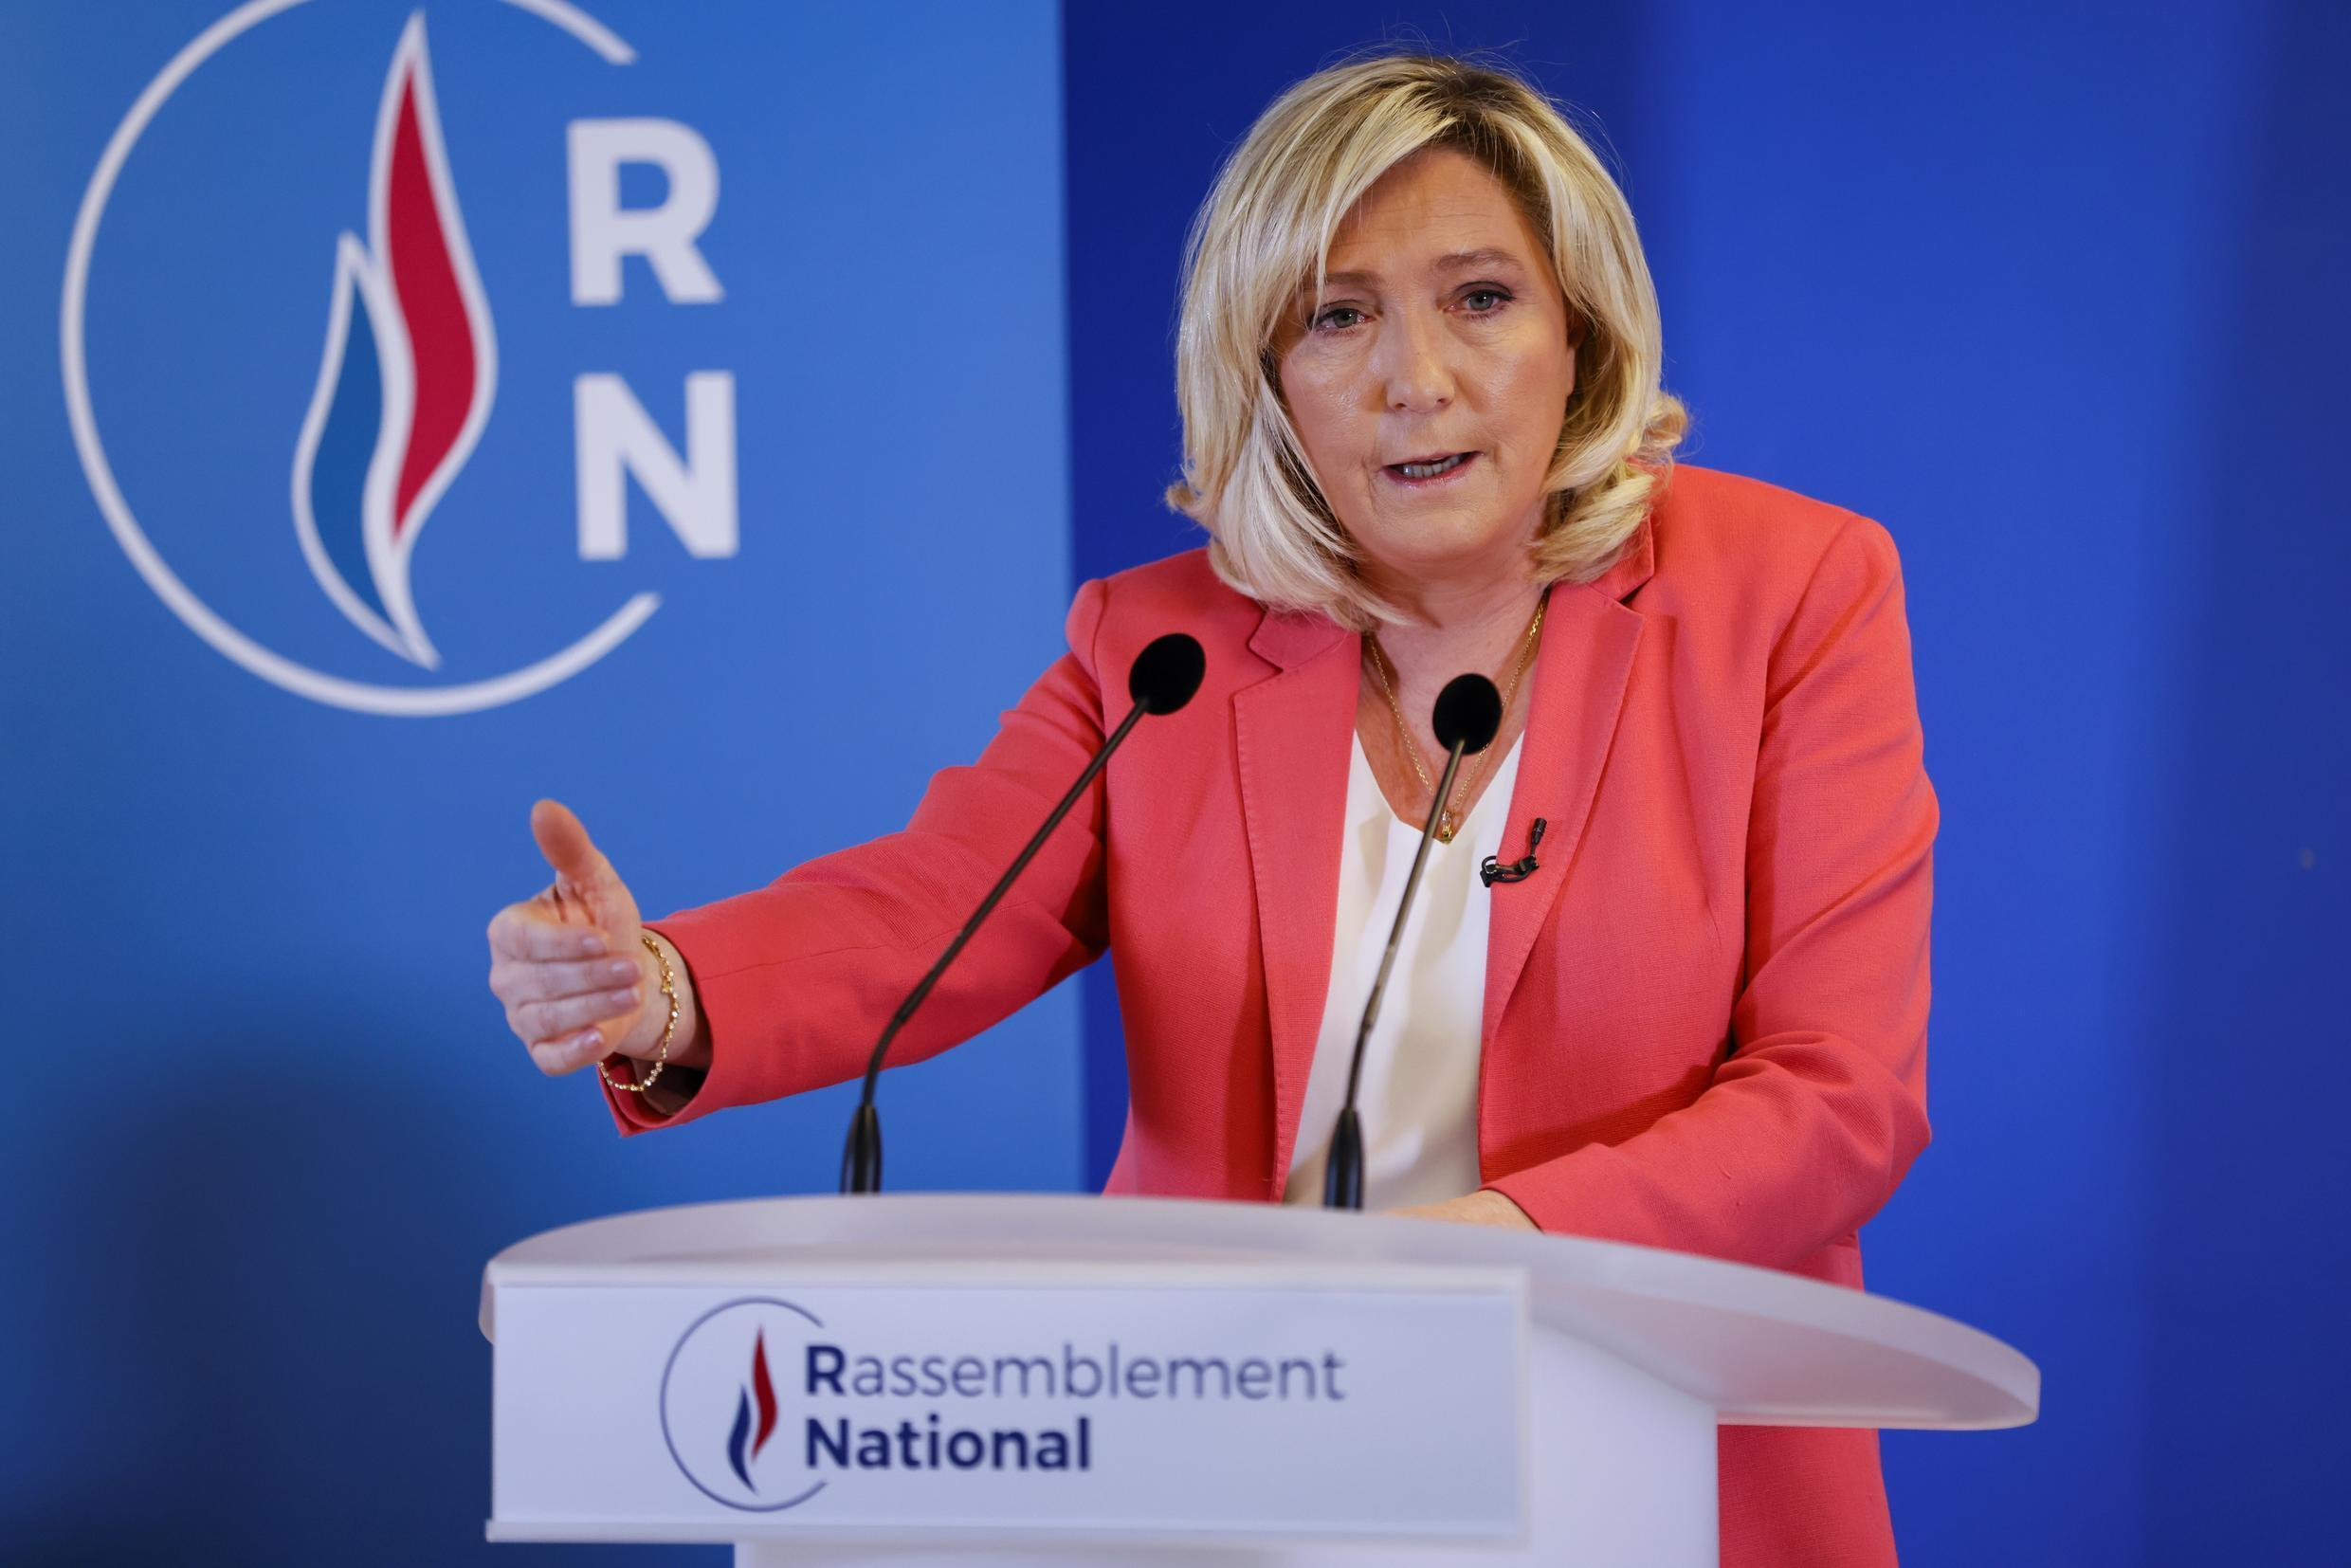 Marine Le Pen, head of far-right party Rassemblement National (RN) addresses a press conference on Friday.